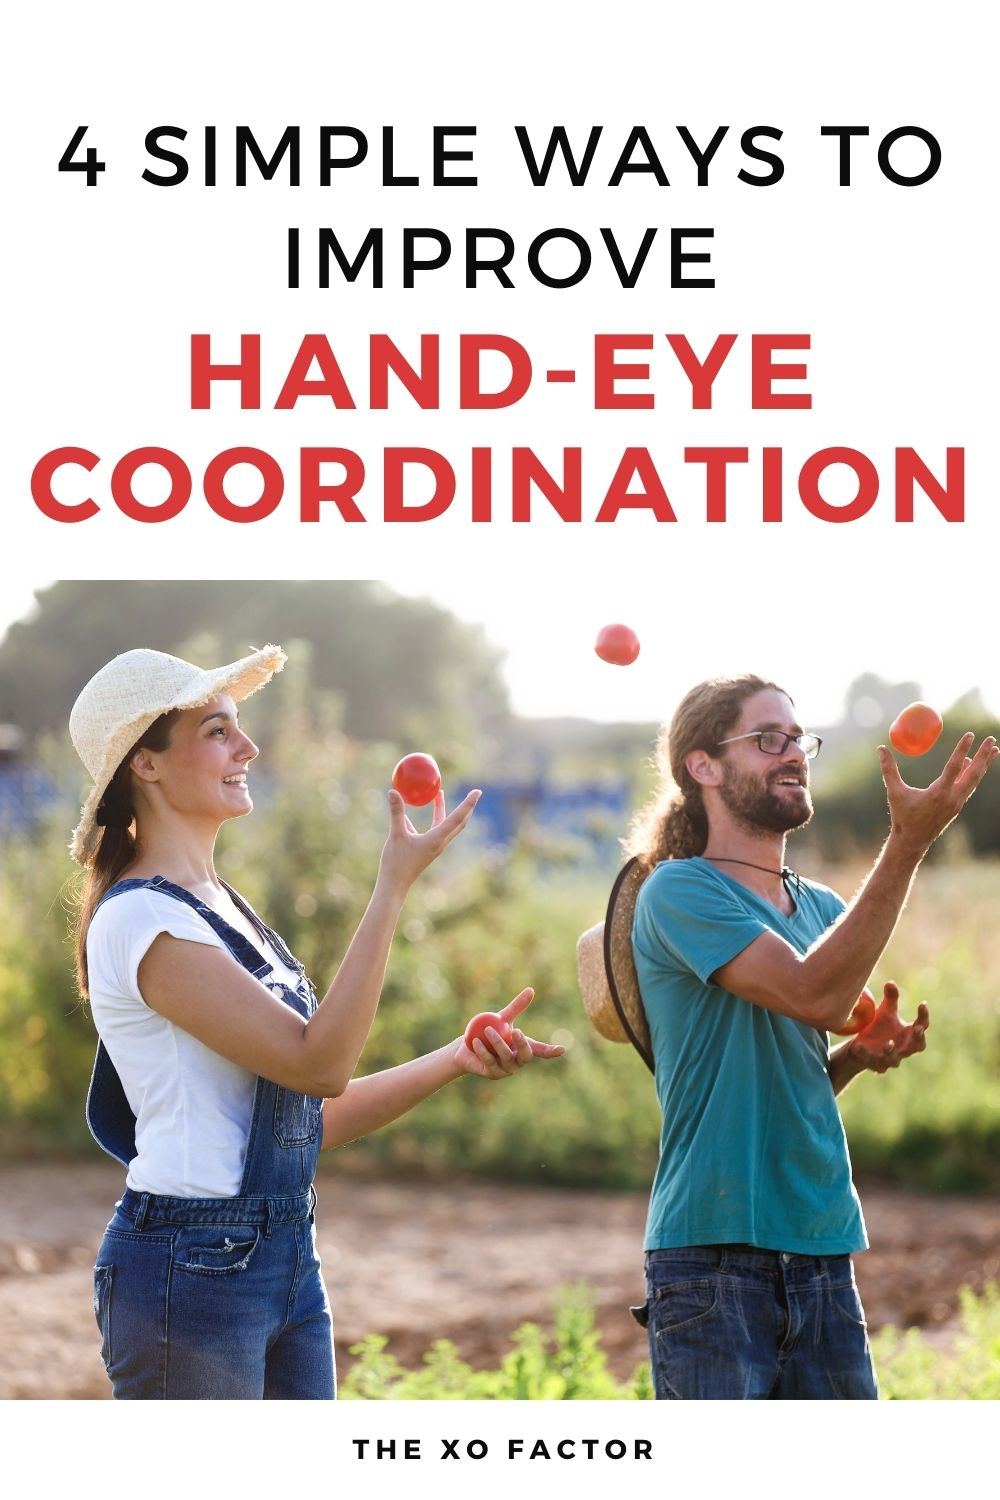 4 simple ways to improve hand-eye coordination